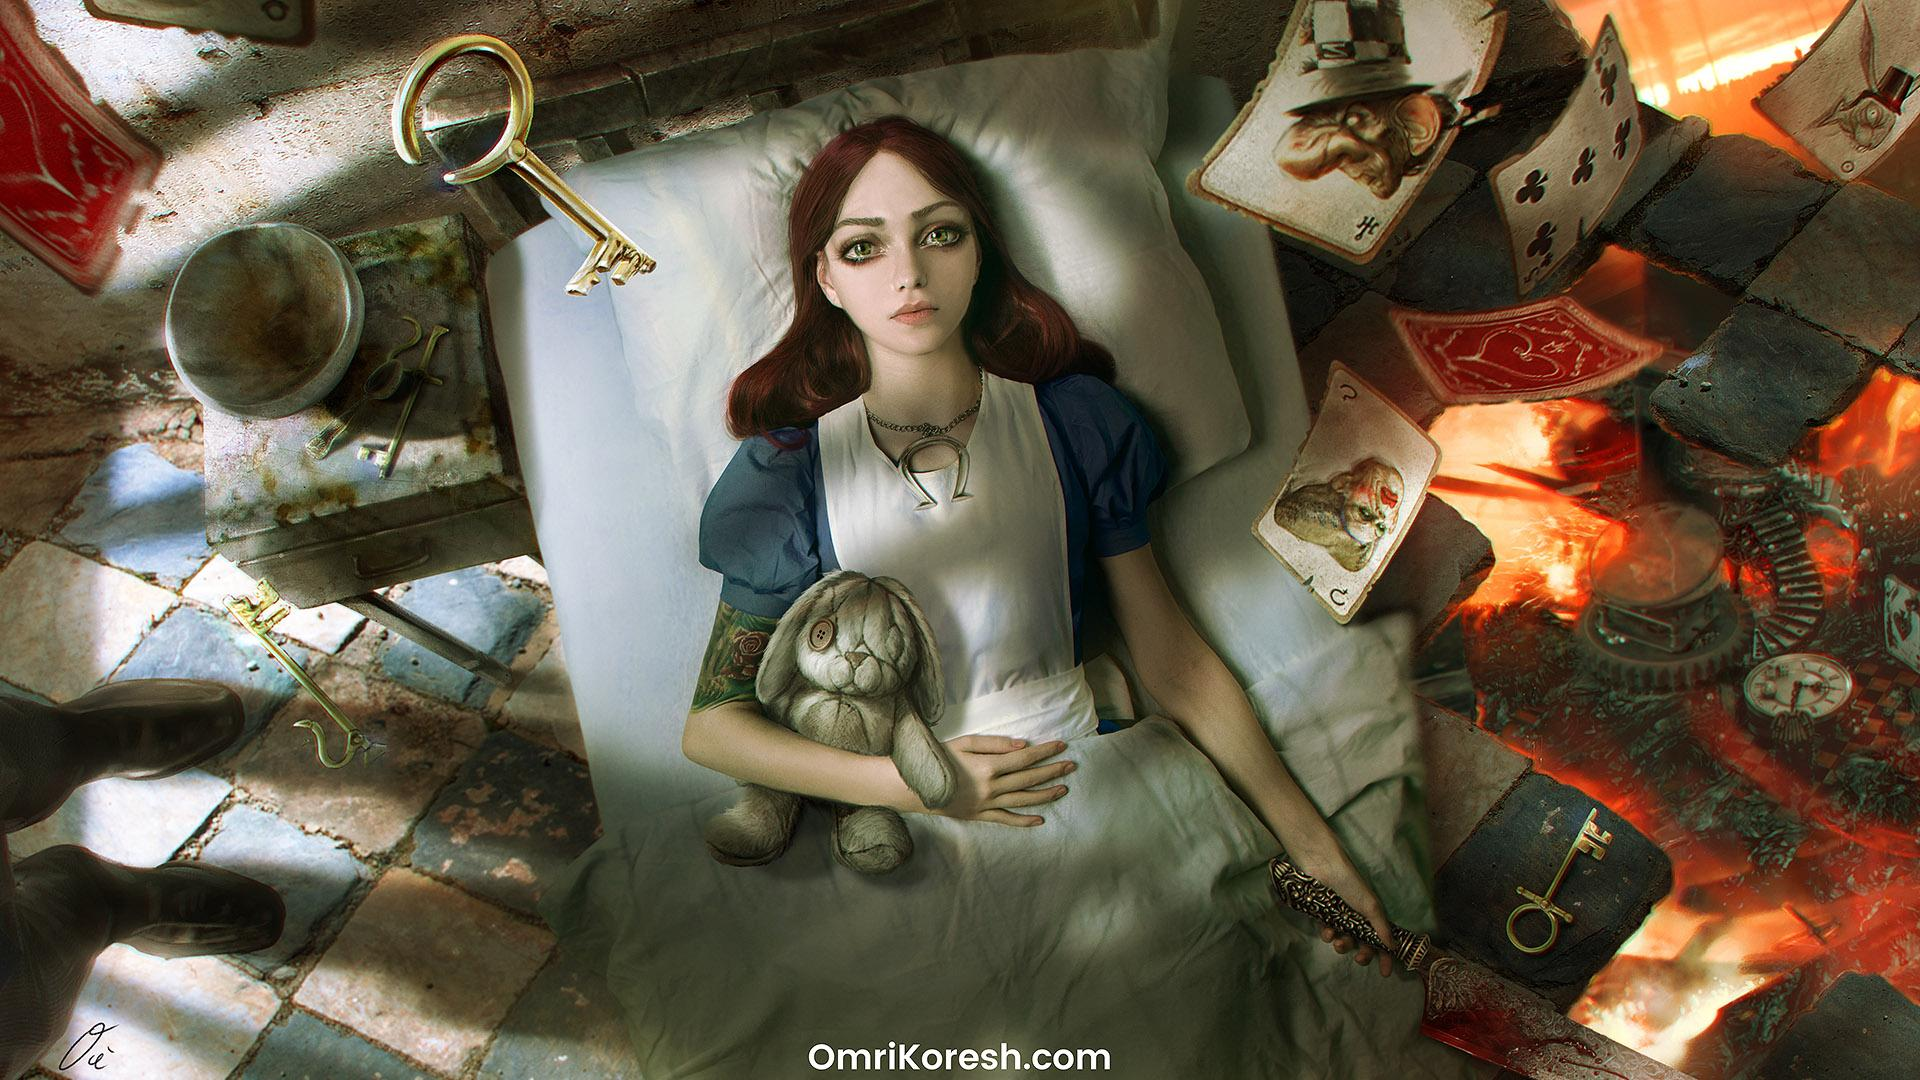 Alice 3: American McGee Working On Proposal For Next Game In Series